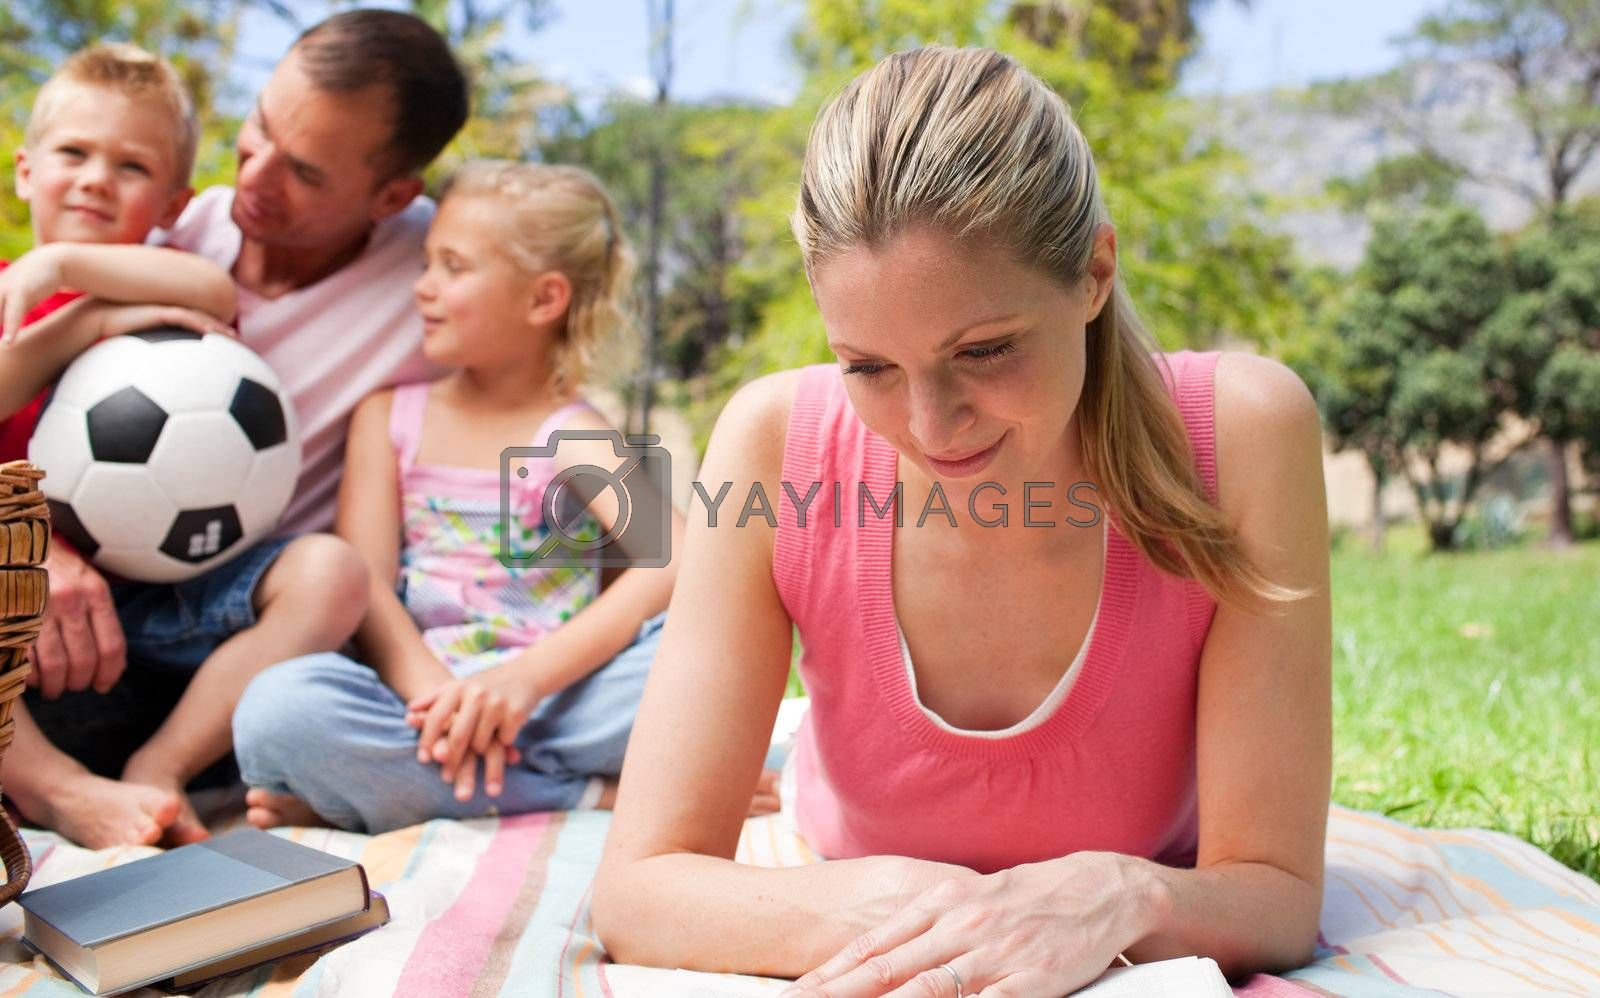 Concentrated mother reading at a picnic with her family in the background